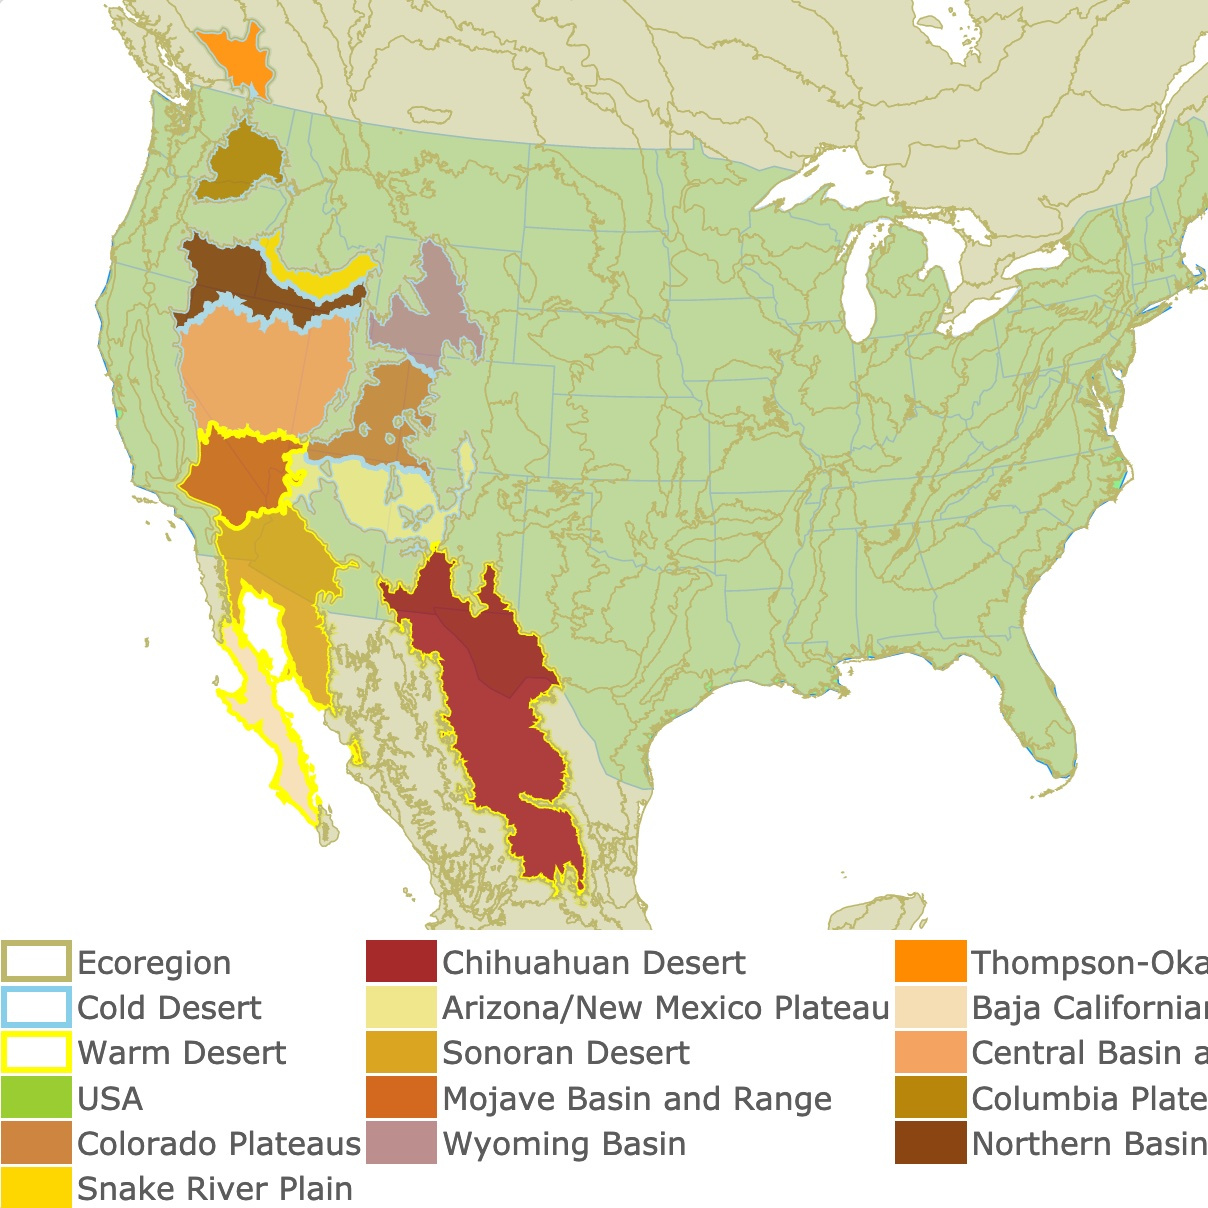 Map of North American Deserts